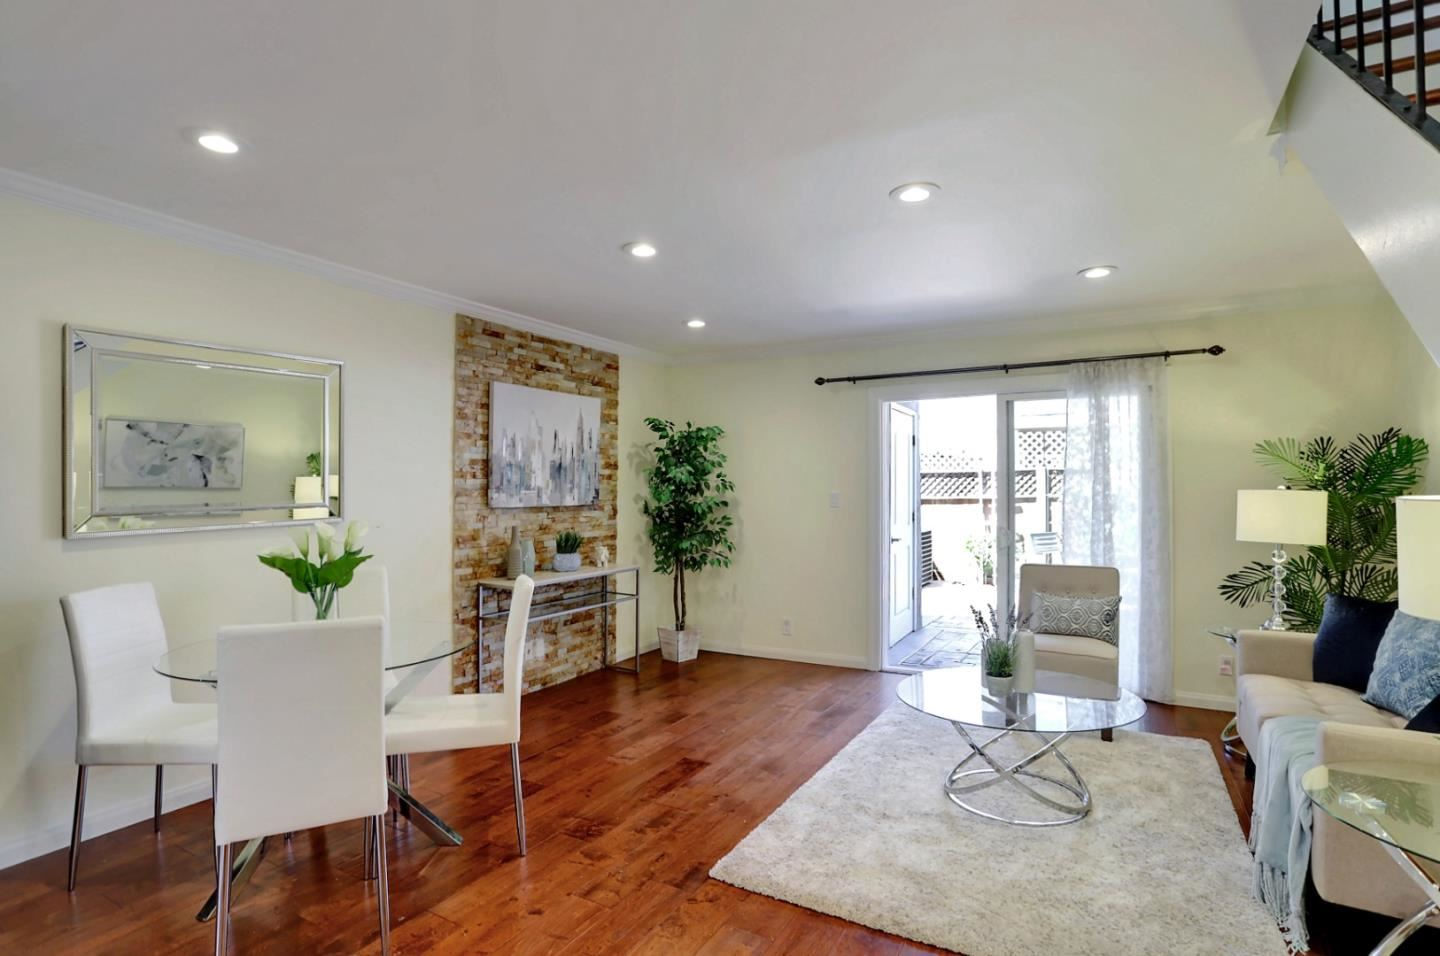 Photo for 335 North Temple Drive, MILPITAS, CA 95035 (MLS # ML81837217)